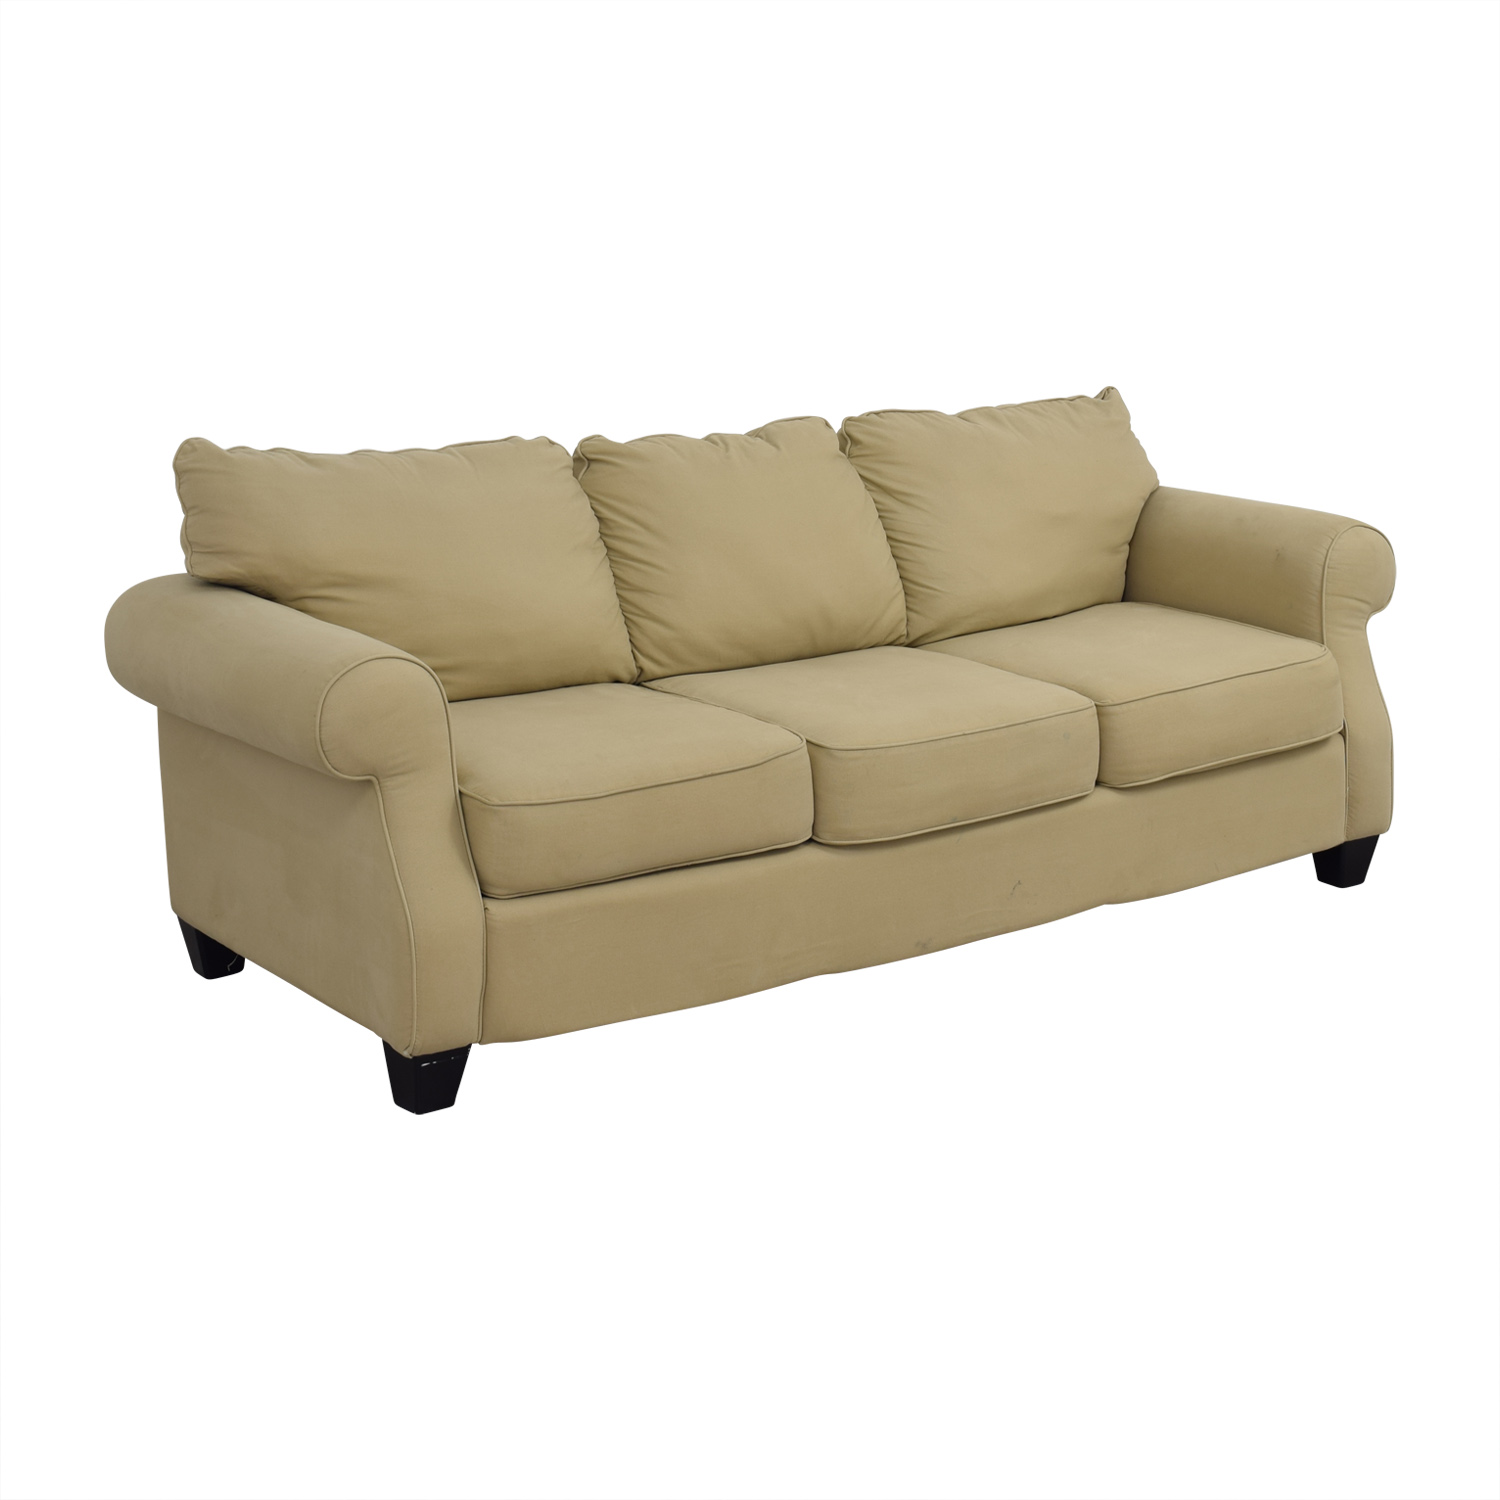 shop Beige Three-Cushion Curved Arm Sofa Classic Sofas